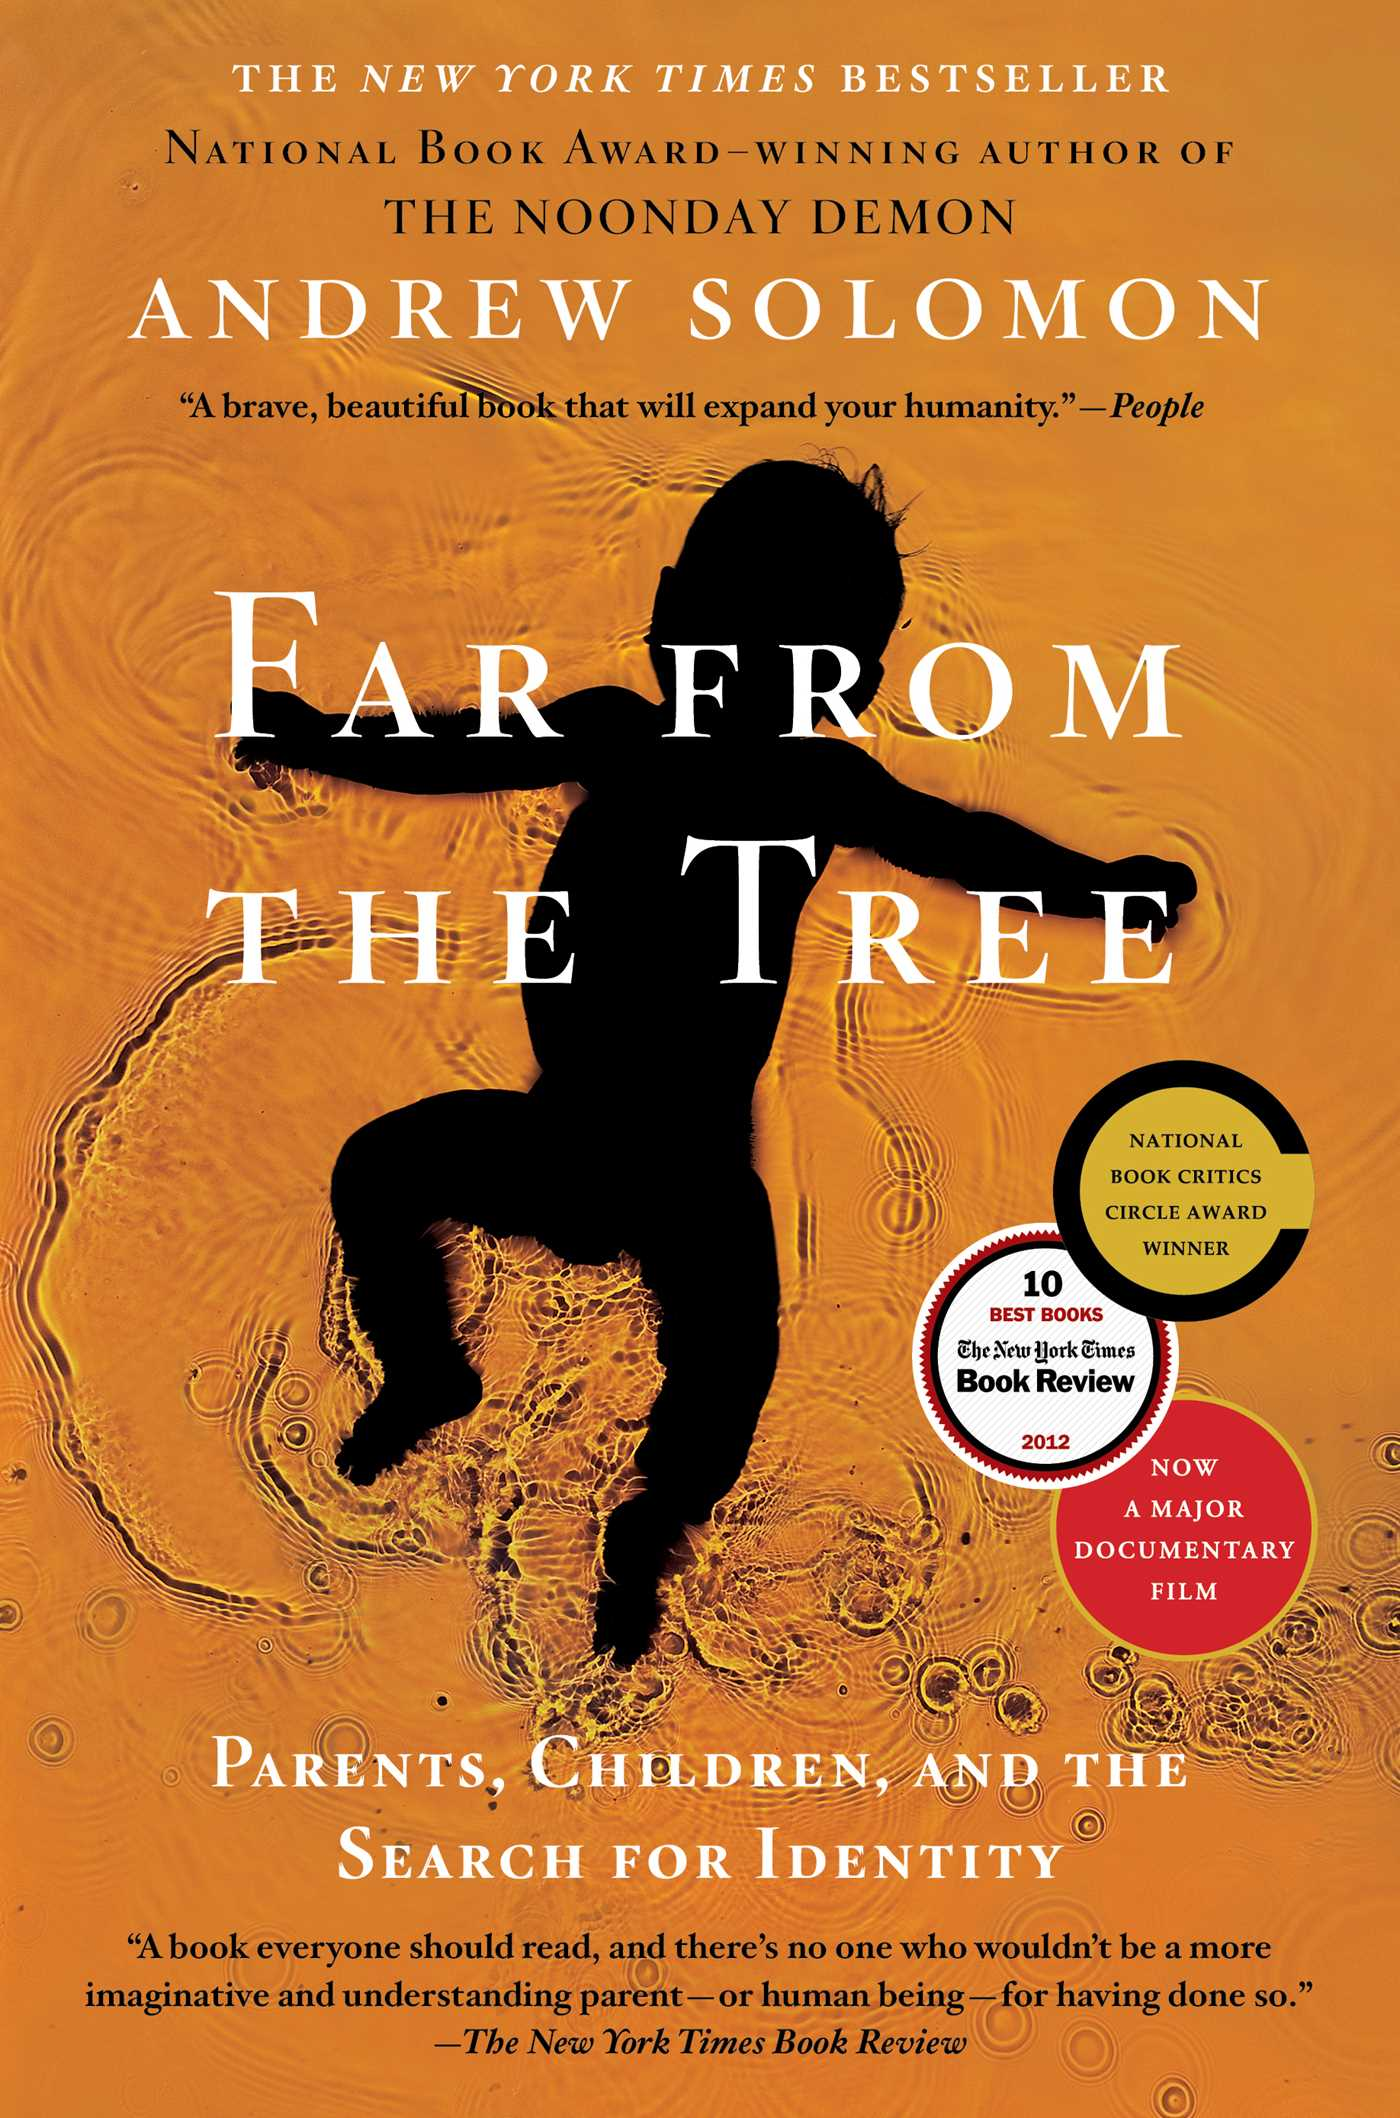 Far from the tree 9781439183106 hr